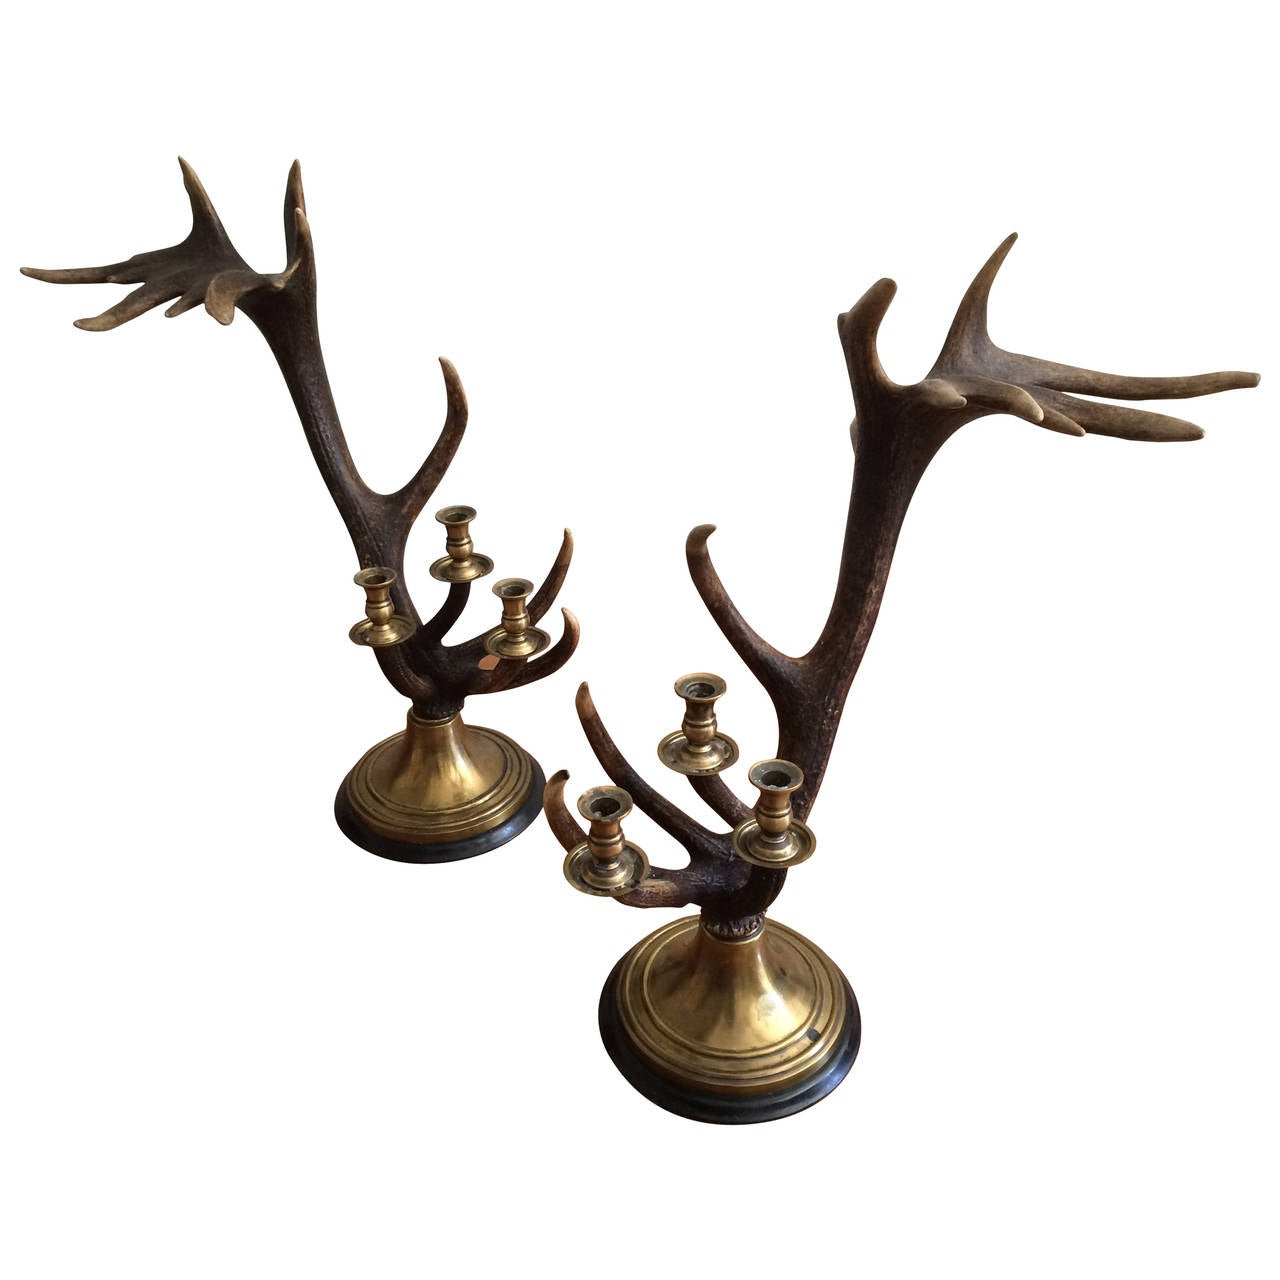 Large Pair Of Anthony Redmile Antler Candlesticks For Sale